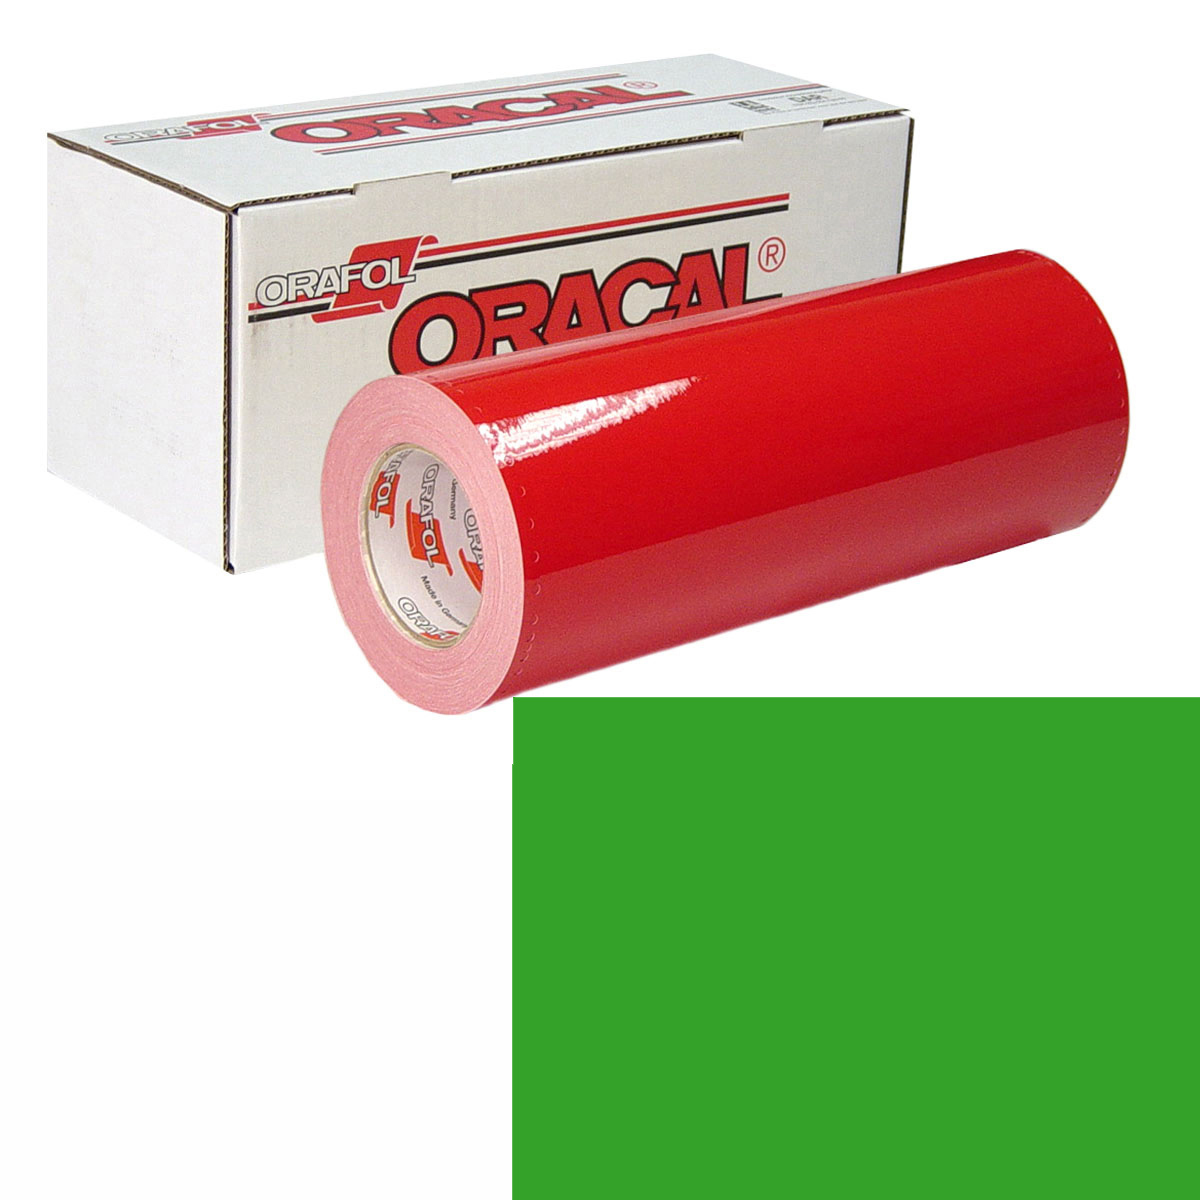 ORACAL 951 Unp 48in X 50yd 602 Grass Green